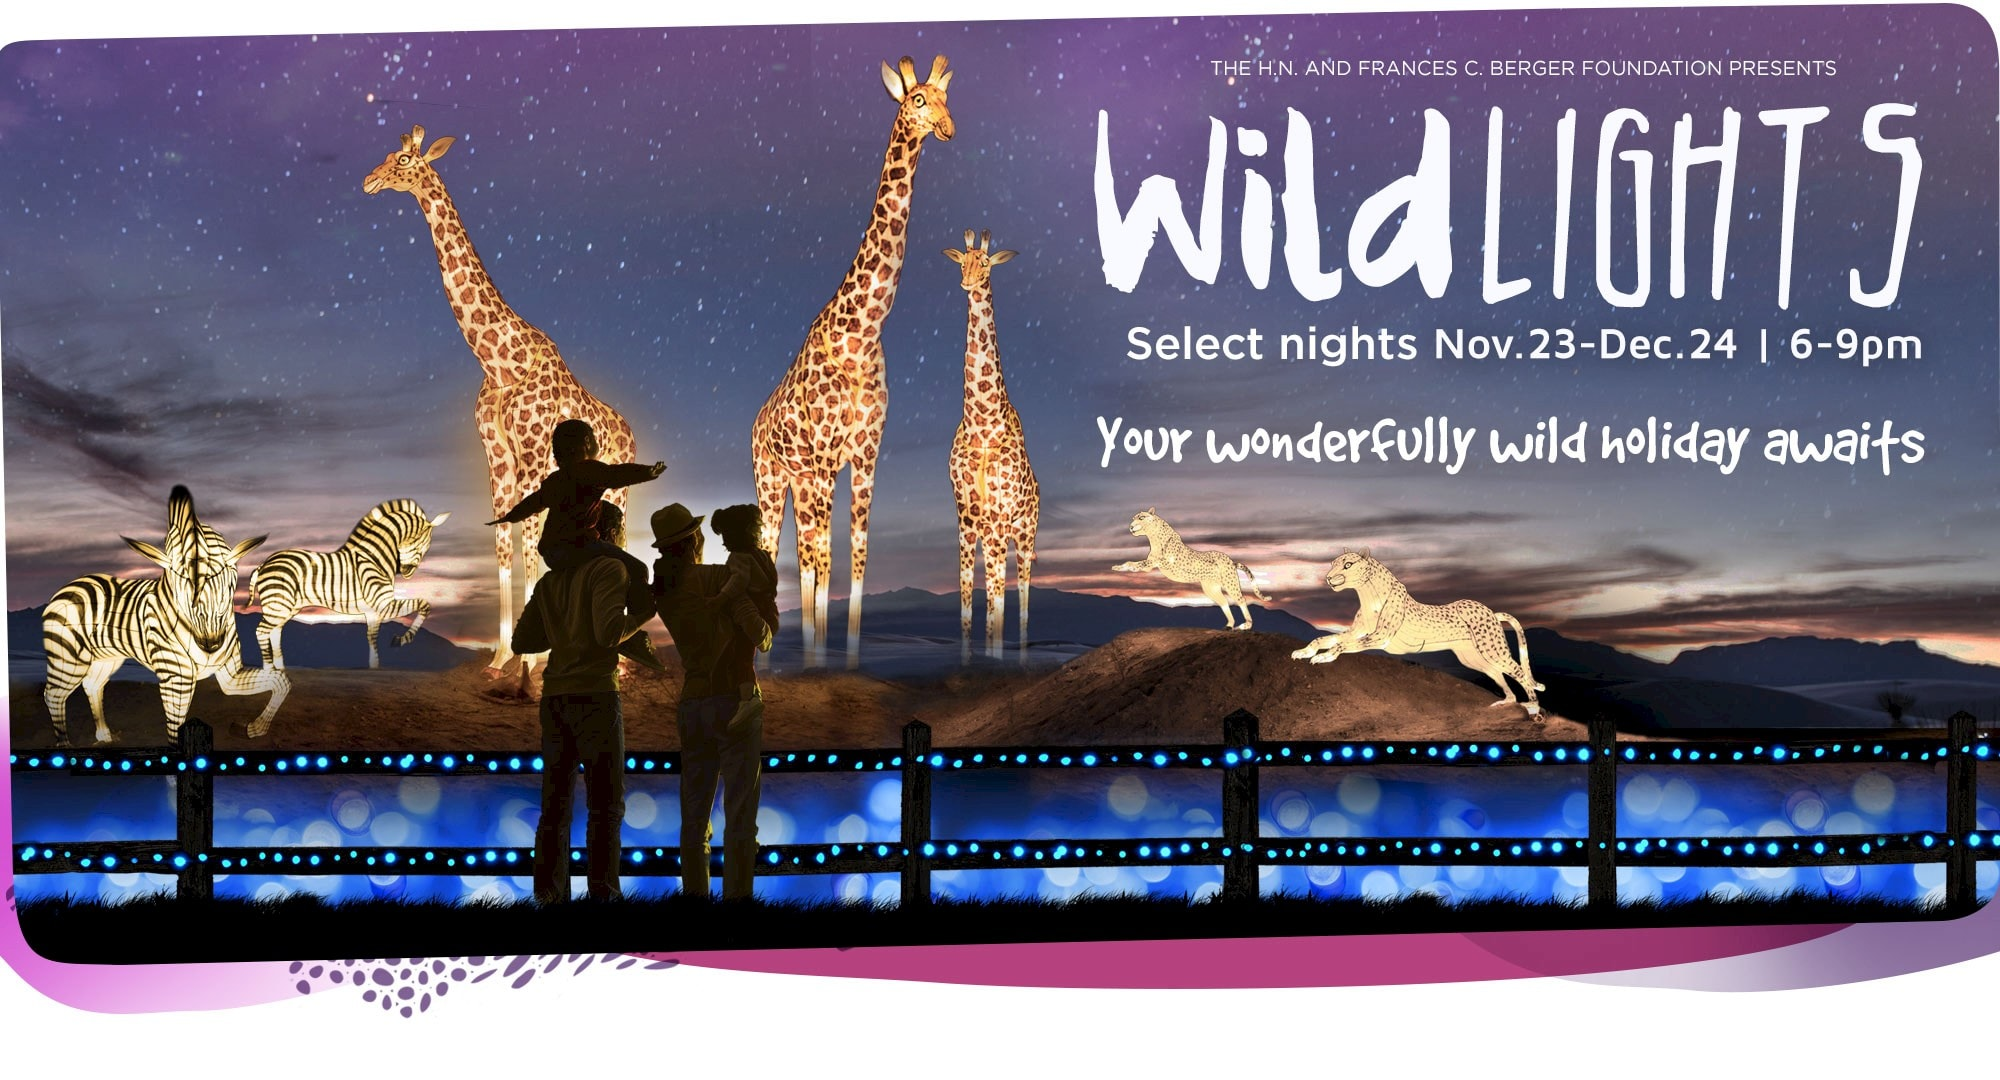 WildLights - Your wonderfully wild holiday awaits. November 23 - Dec 24 | 6 - 9pm. Click for more information.